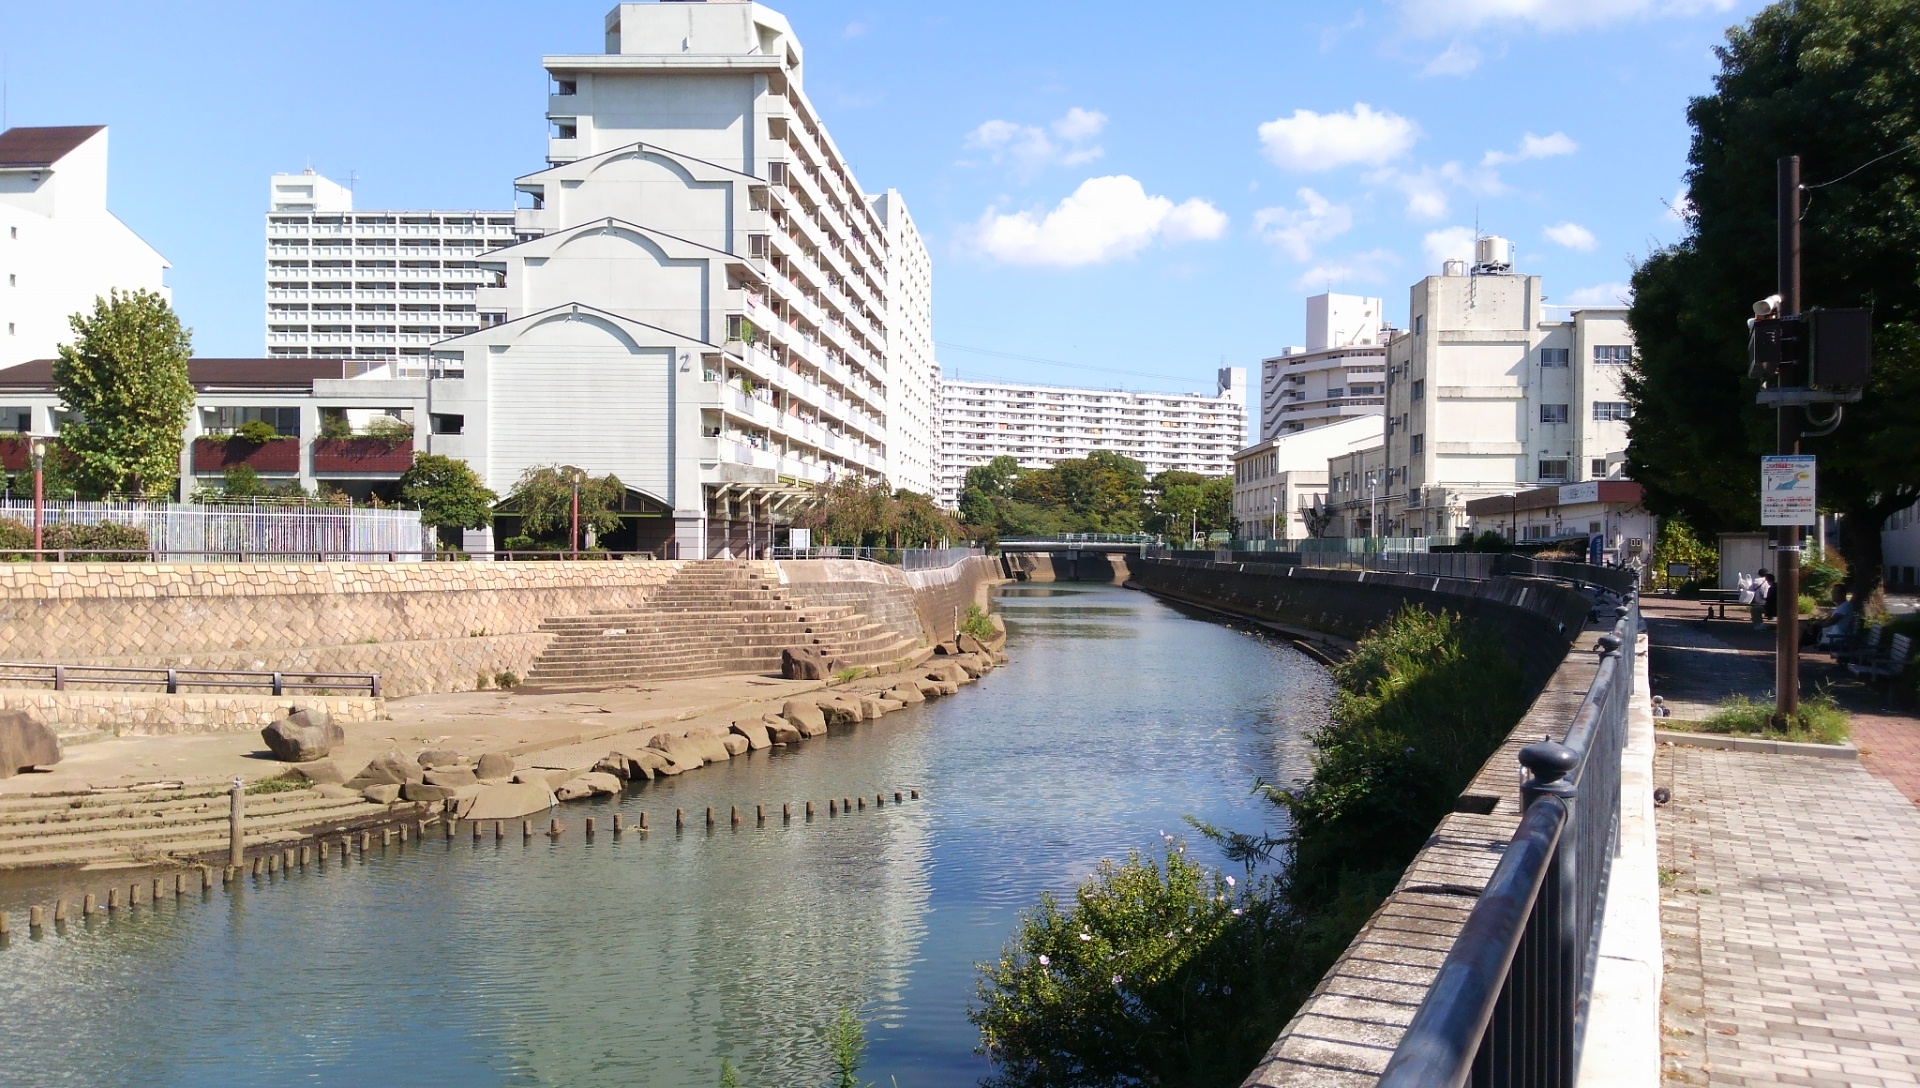 https://upload.wikimedia.org/wikipedia/commons/1/1a/Katabira_River_running_through_Kanagawa%2C_Japan_2013-09-20.JPG